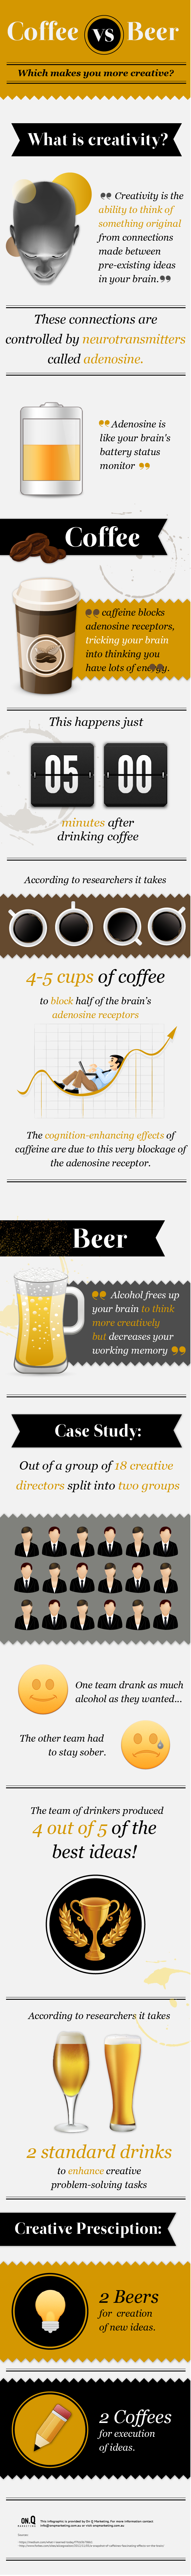 coffee-vs-beer